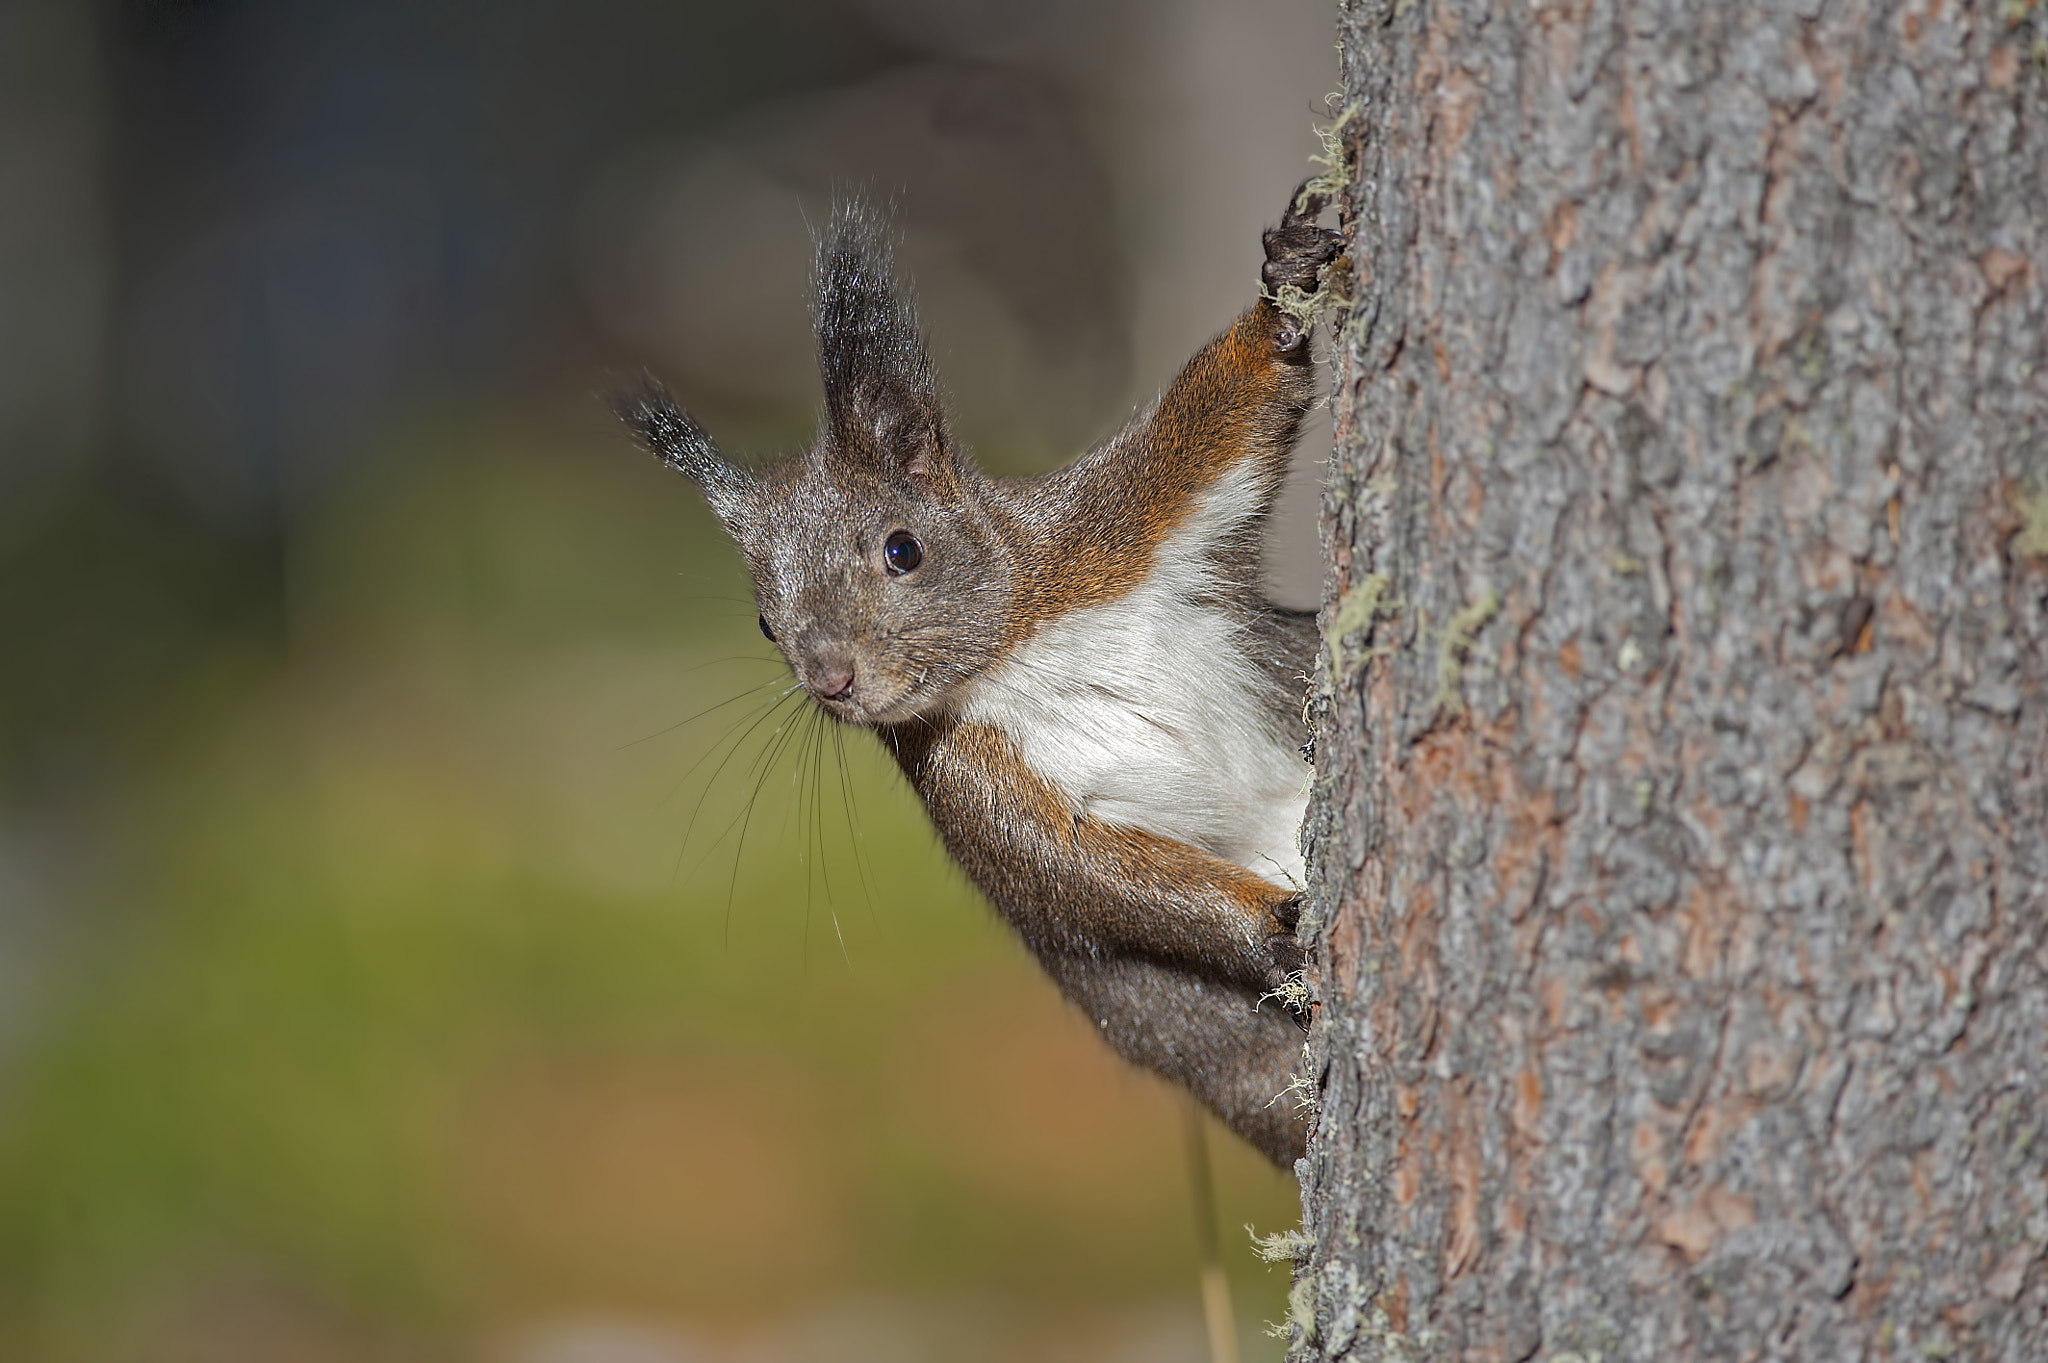 Photograph Curious squirrel by Riccardo Trevisani on 500px